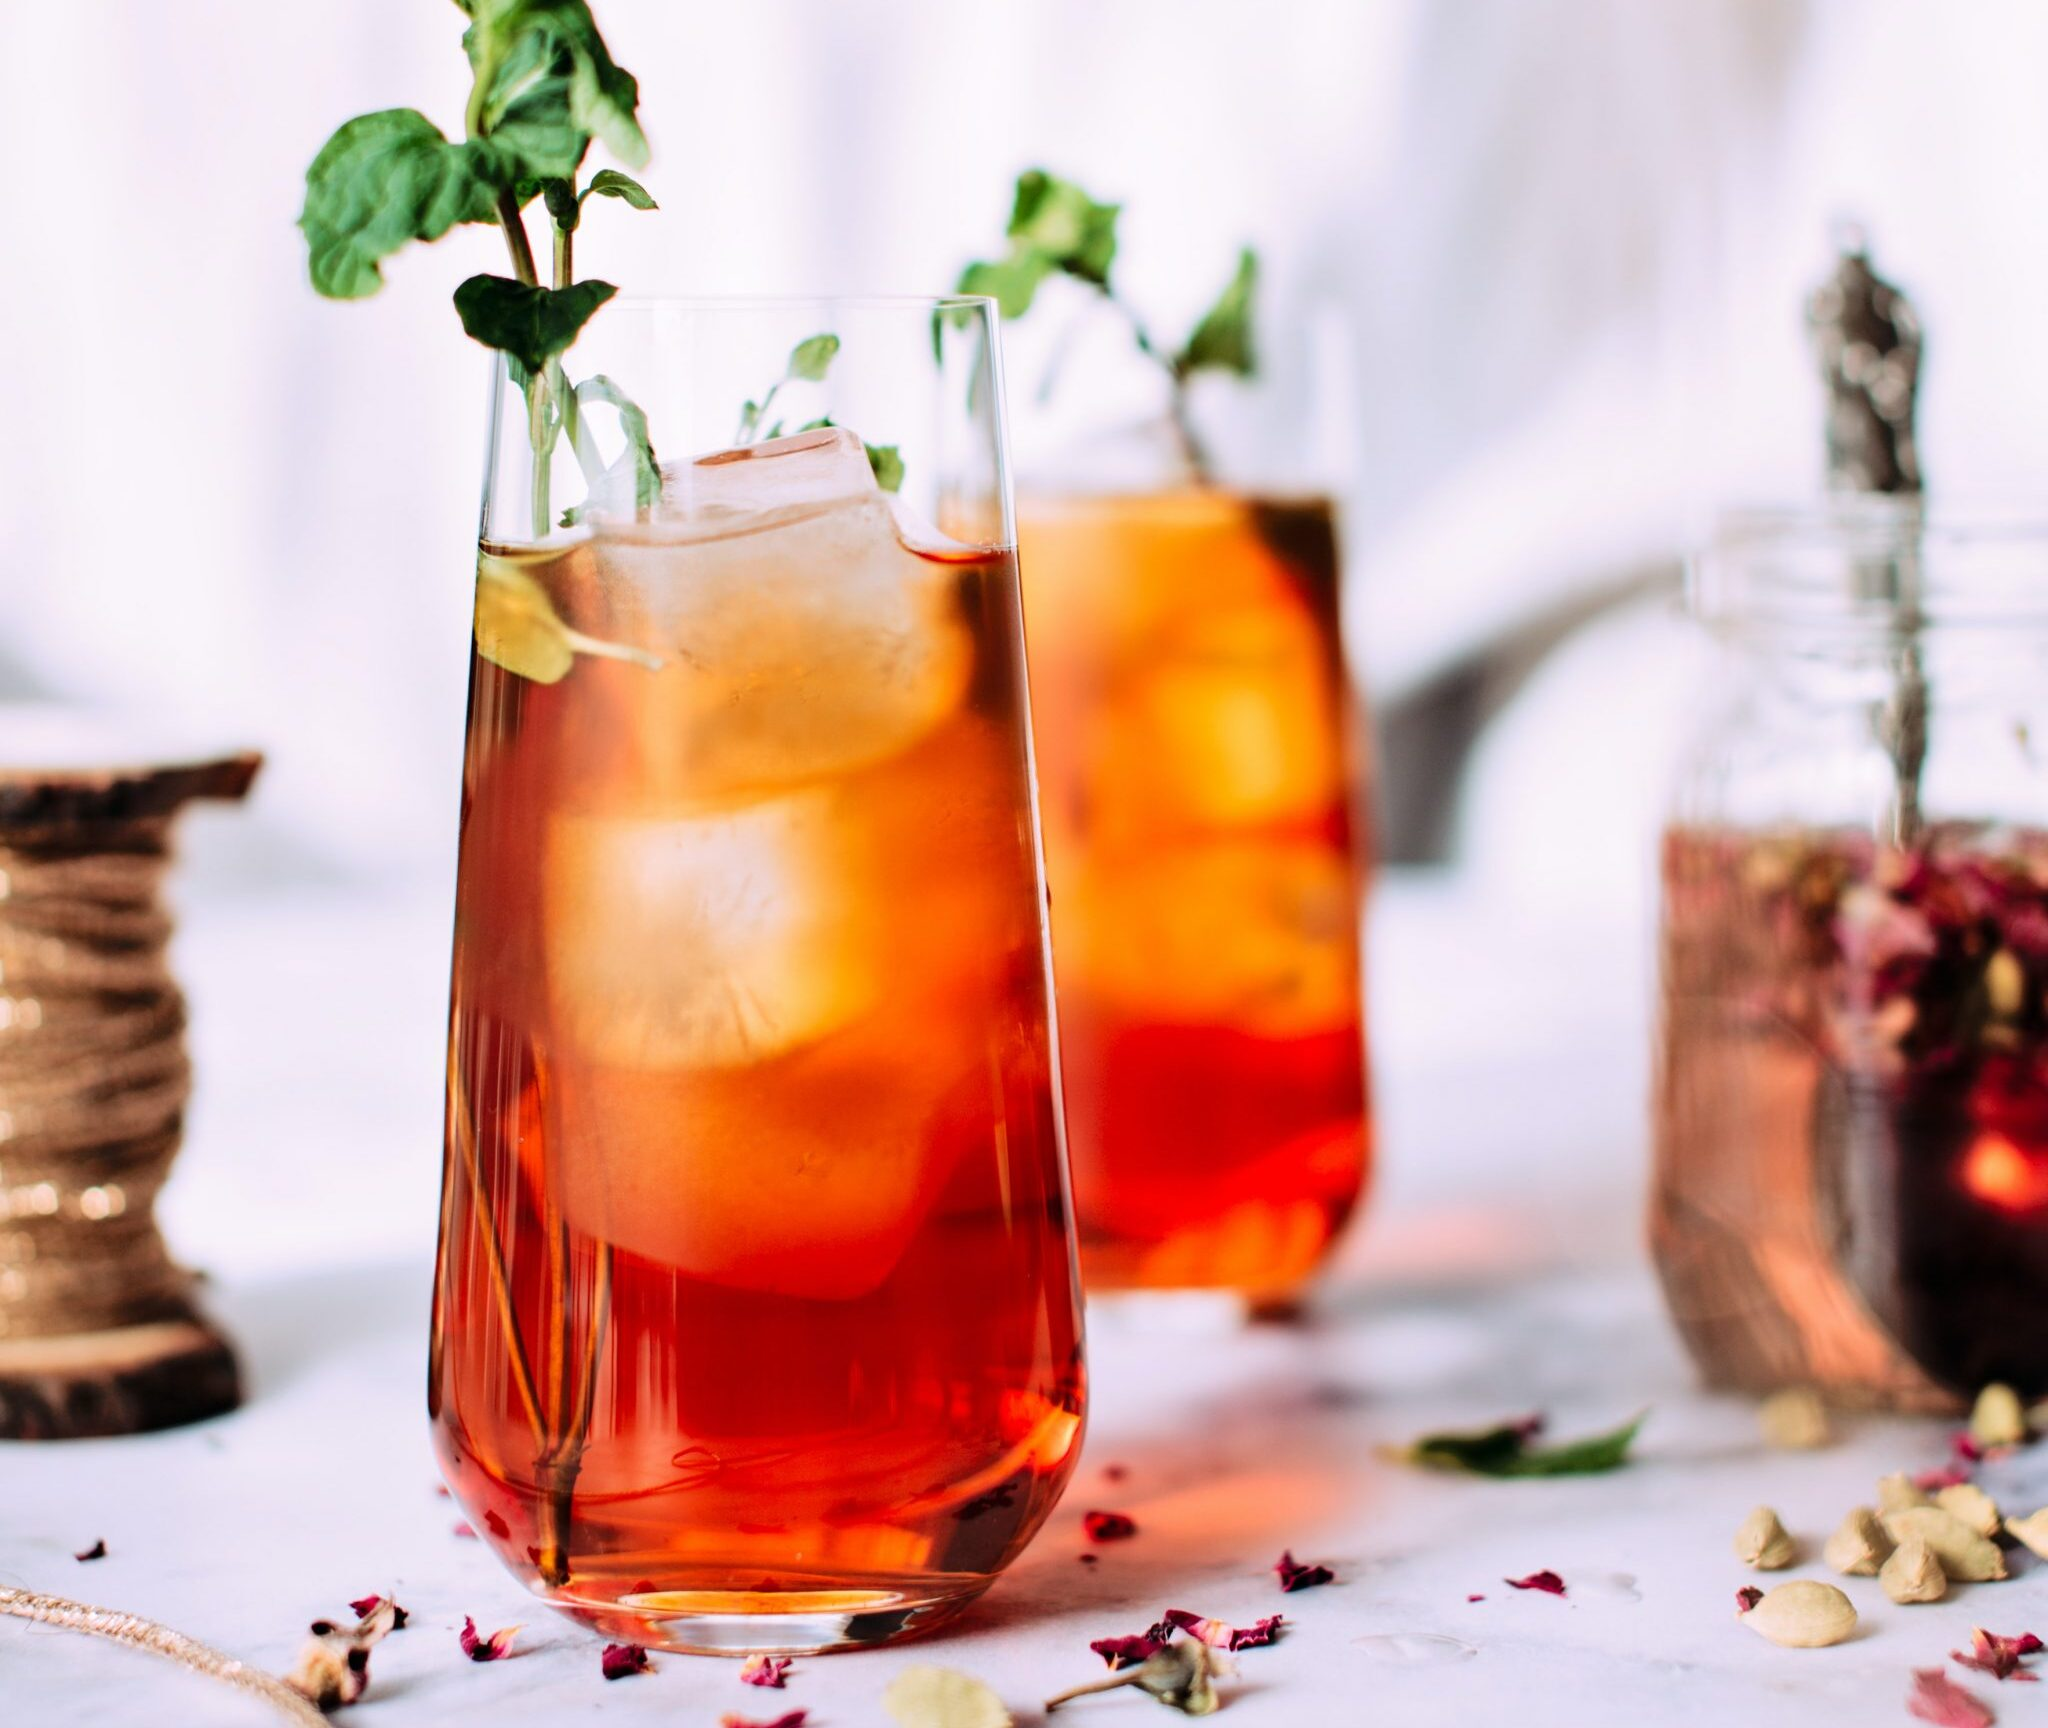 Iced Tea that is styled with a sprig of a green herb. There are roses in the background.